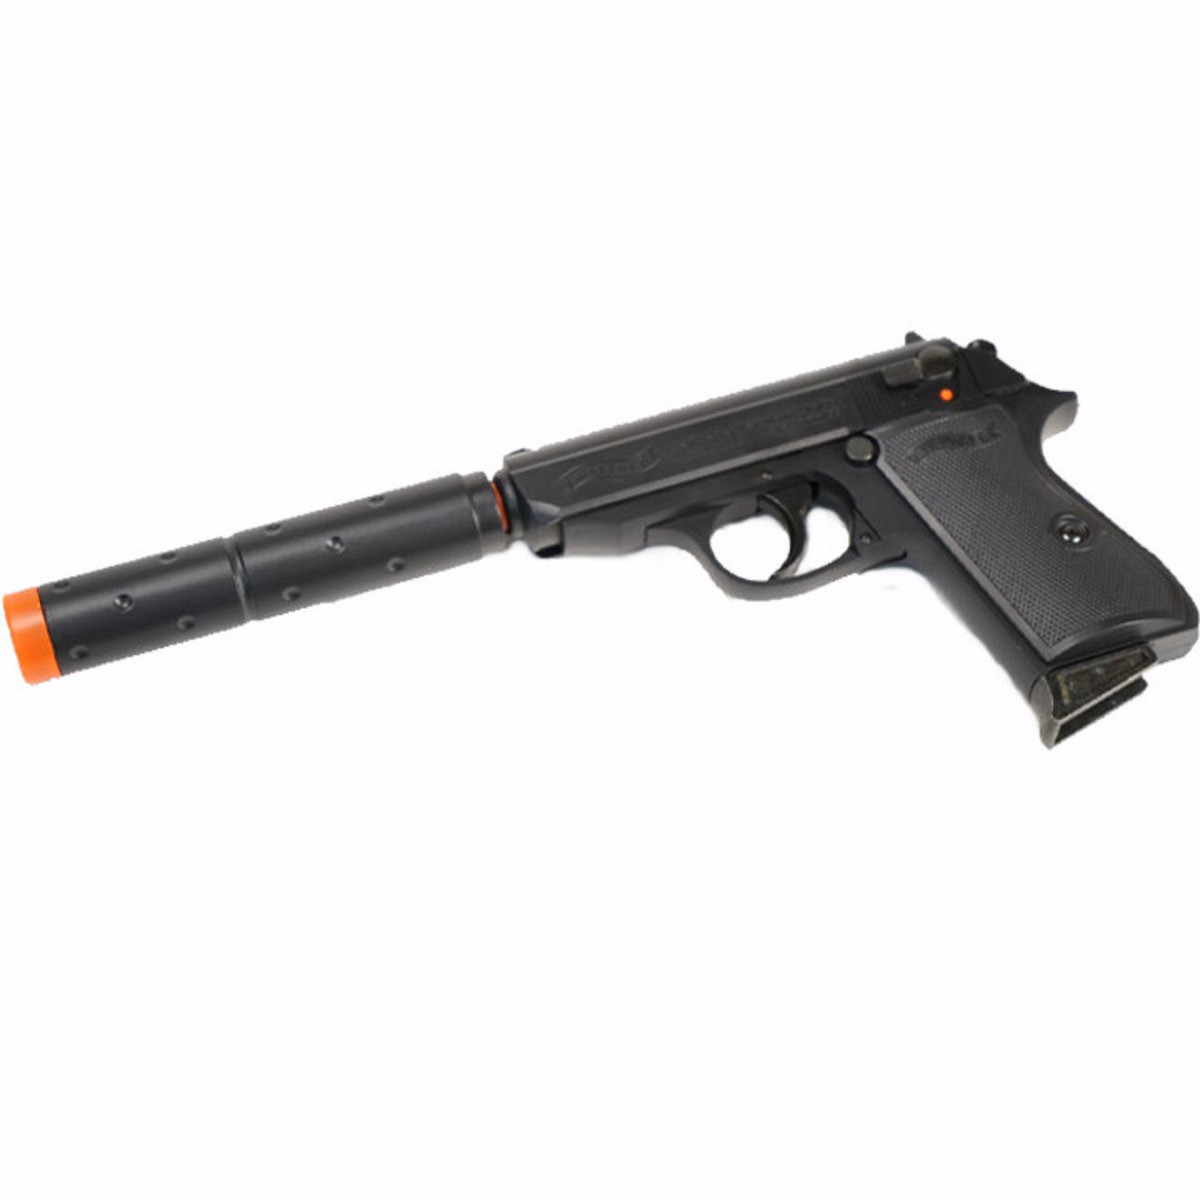 View larger image of Walther PPK/S Operative Spring Airsoft Pistol Kit